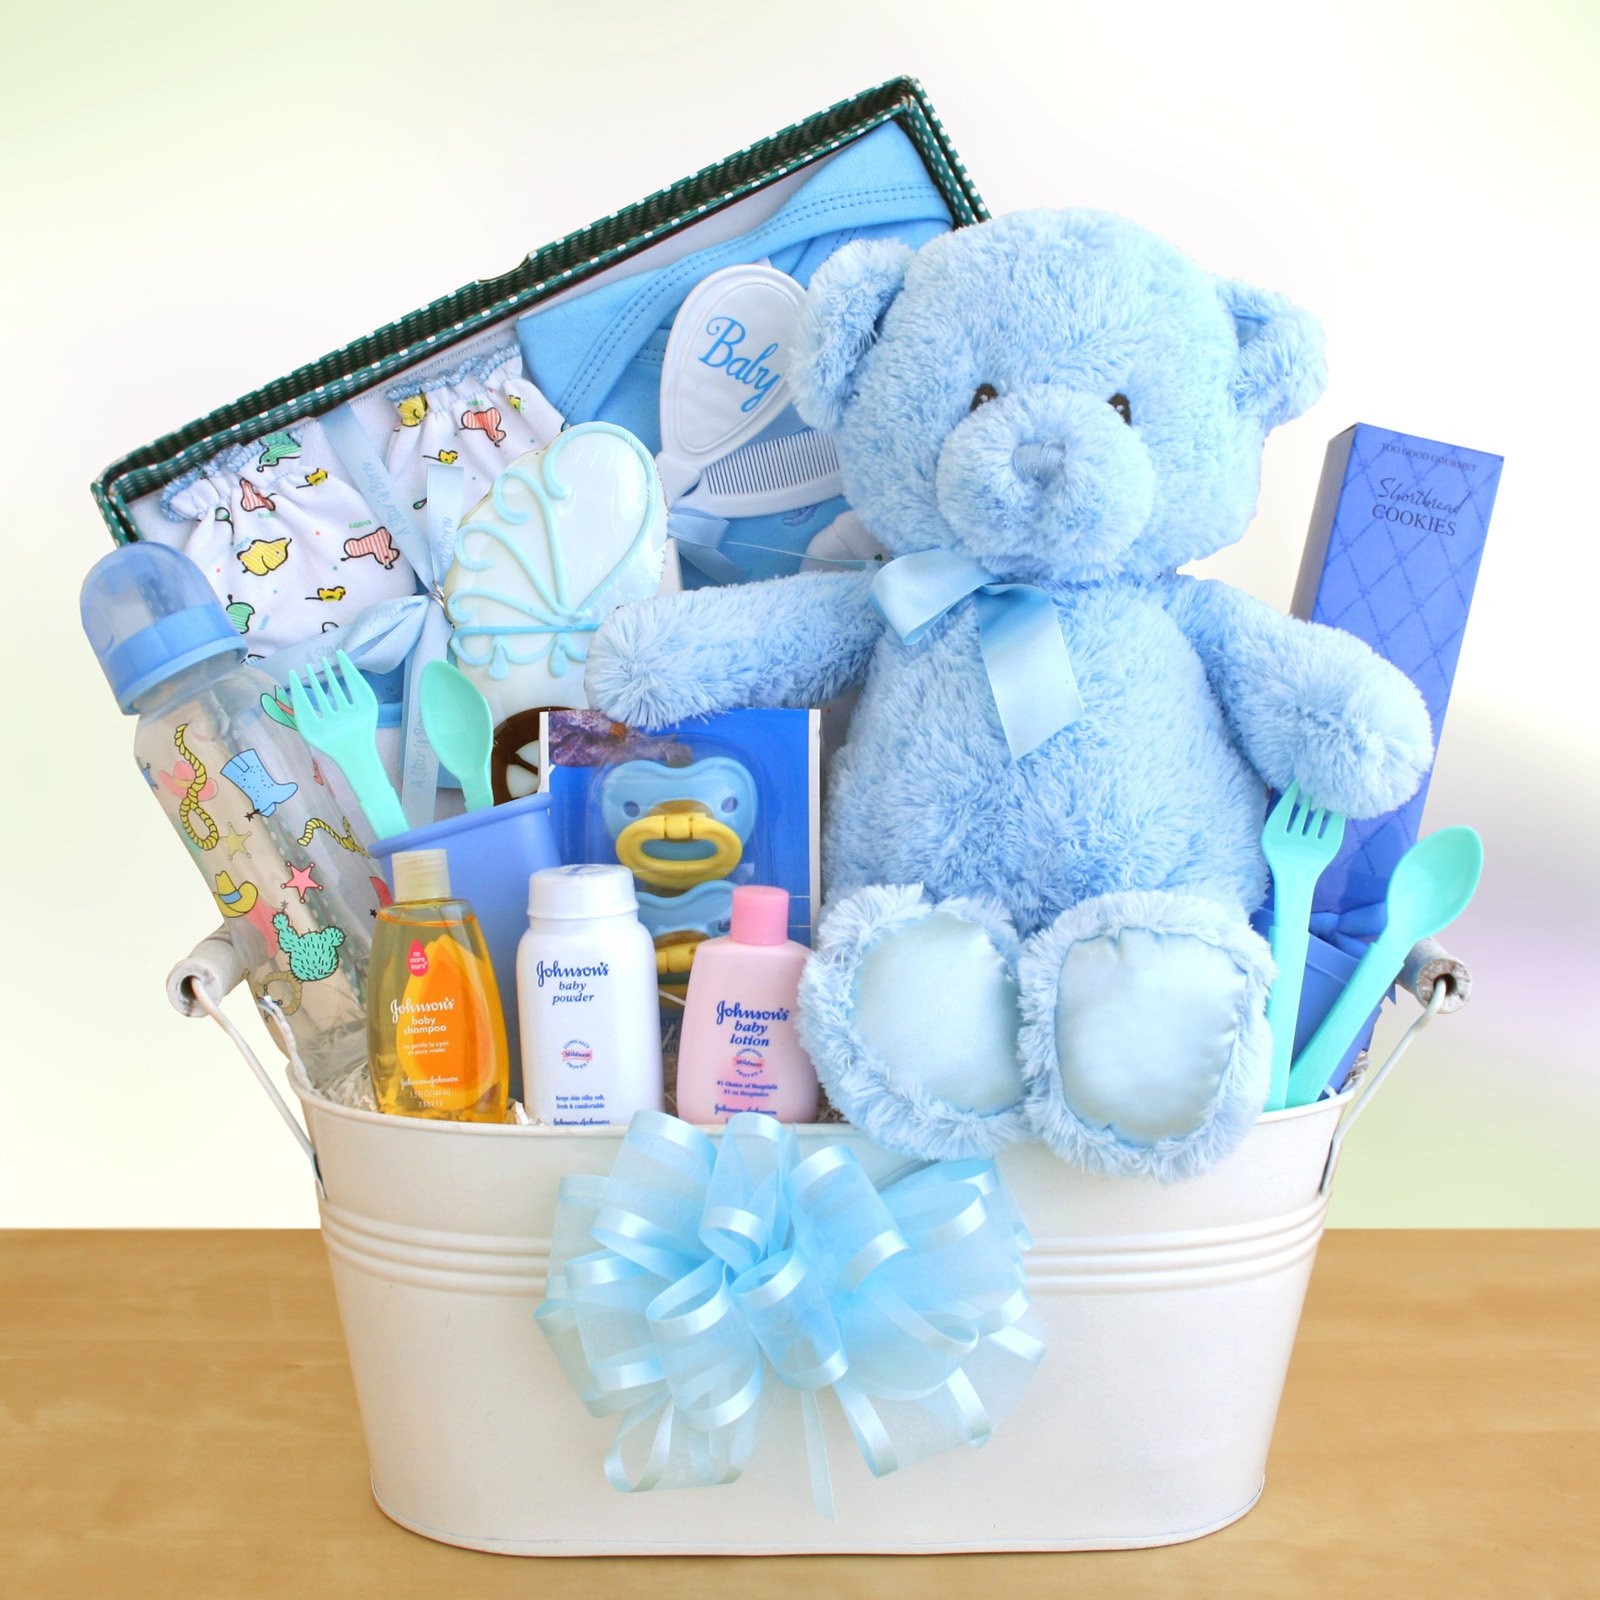 Best ideas about Gift Ideas For Baby Shower . Save or Pin New Arrival Baby Boy Gift Basket Gift Baskets by Now.